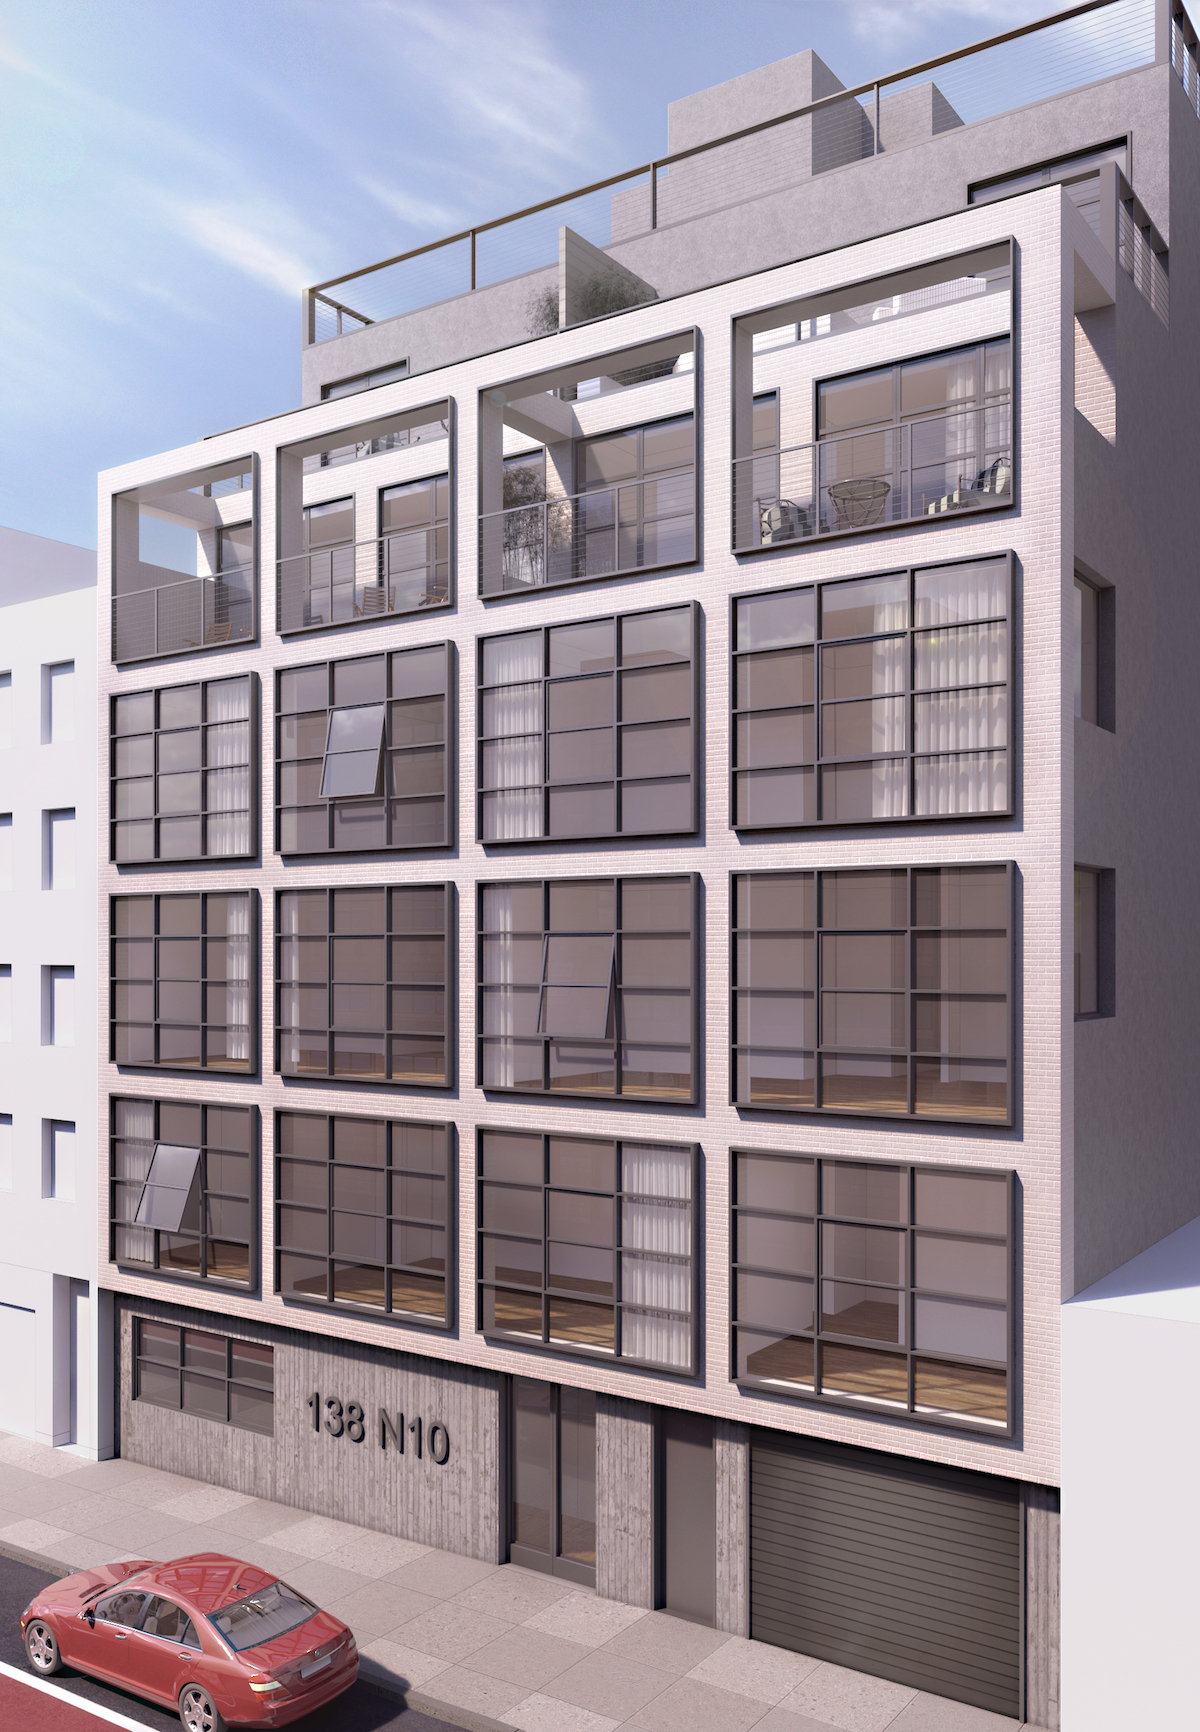 138 North 19th Street, rendering by Morris Adjmi Architects